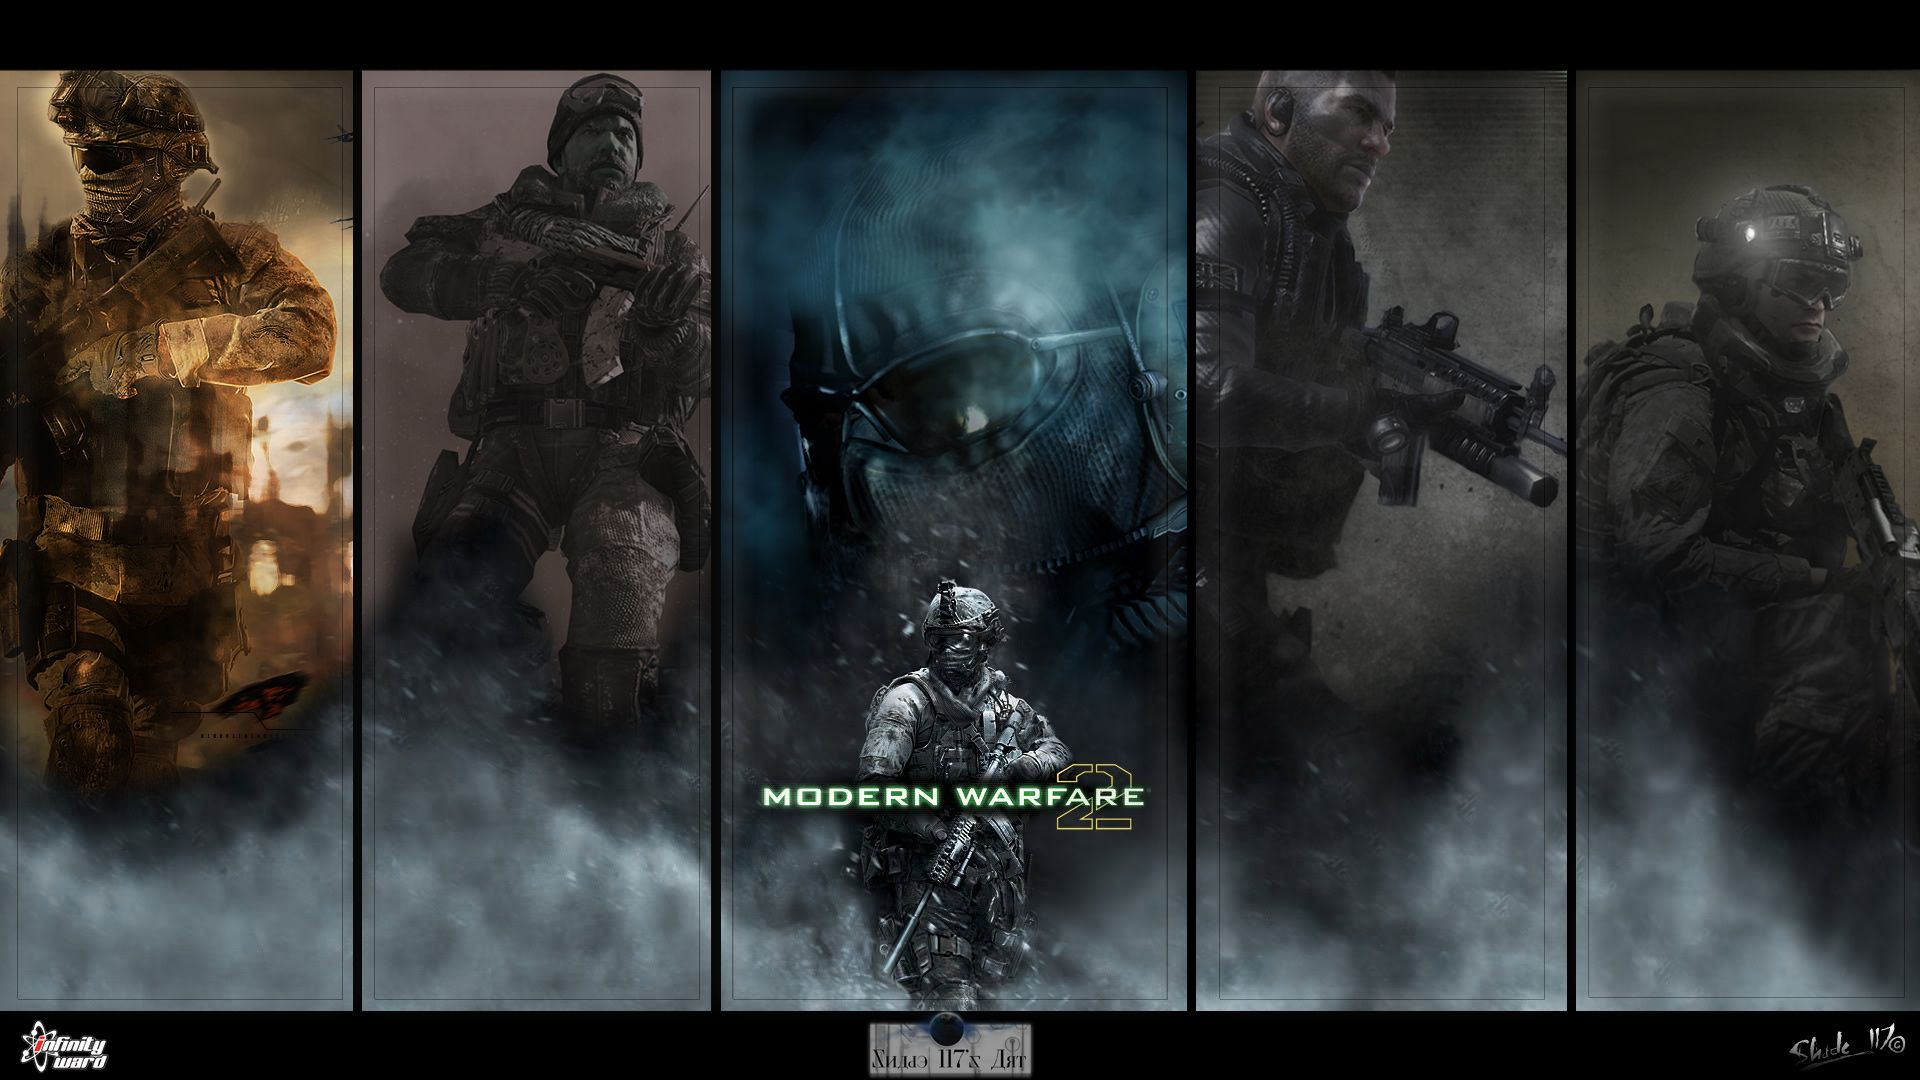 COD MW2 Singleplayer Missions addon - Modern Warfare Maps ... Call Of Duty Modern Warfare Maps on call of duty: finest hour, halo: reach, call of duty 3 multiplayer team deathmatch, call of duty 3, call of duty: modern warfare 3, modern warfare 4 maps, gears of war, call of duty ancient warfare, modern warfare 2 multiplayer maps, battlefield: bad company 2, call of duty 4 g36c, star wars force unleashed maps, call of duty: black ops ii, call of duty collection xbox 360, call of duty ghosts fog, grand theft auto iv, captain price, advanced warfare dlc maps, call of duty world at war maps, call of duty: black ops, call of duty: world at war, call of duty advanced warfare maps, call of duty mlg wallpaper, medal of honor, call of duty map pipeline, real life call of duty maps, call of duty airport map, call of duty mw2 maps, call of duty desktop theme, call of duty boat map, modern warfare 3 maps, call of duty gears of war maps, call of duty 4: modern warfare,